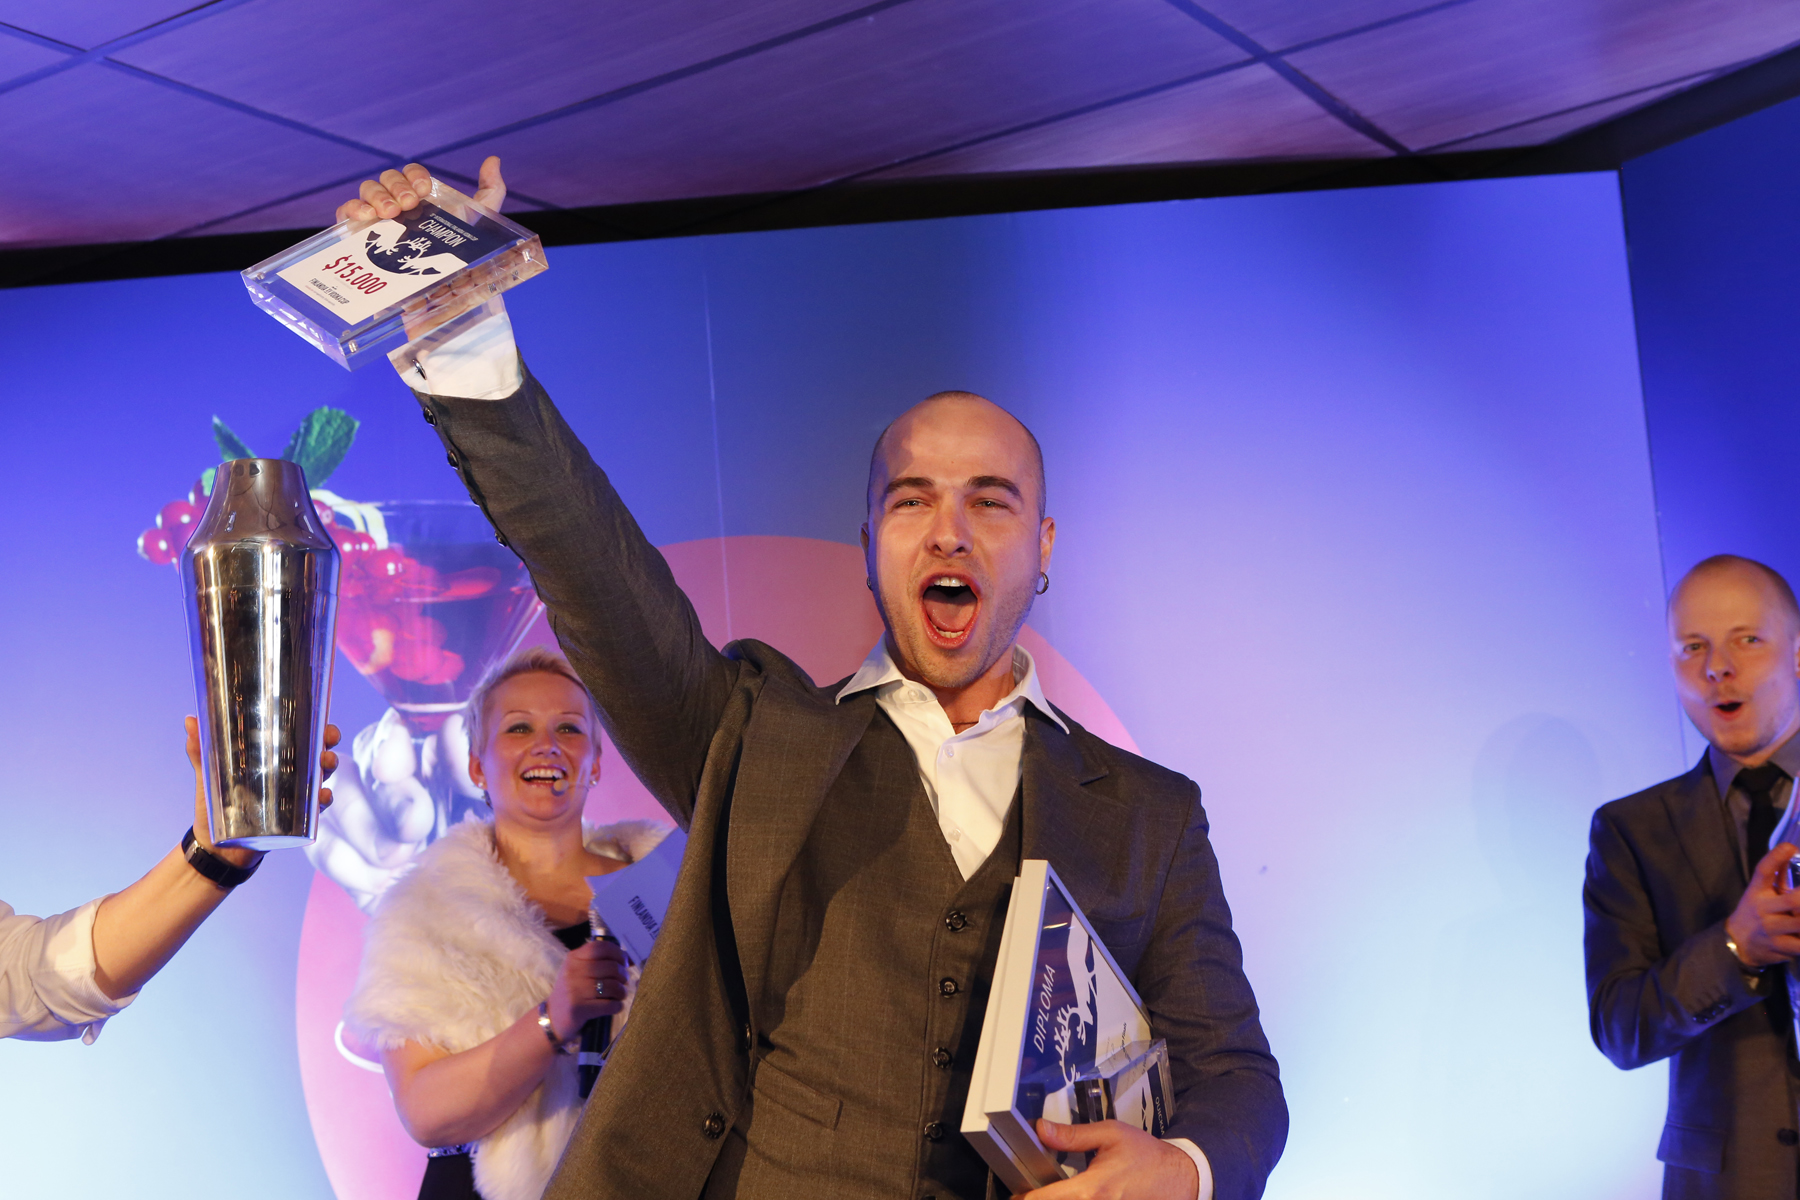 Finlandia XV Vodka Cup – And the winner is…